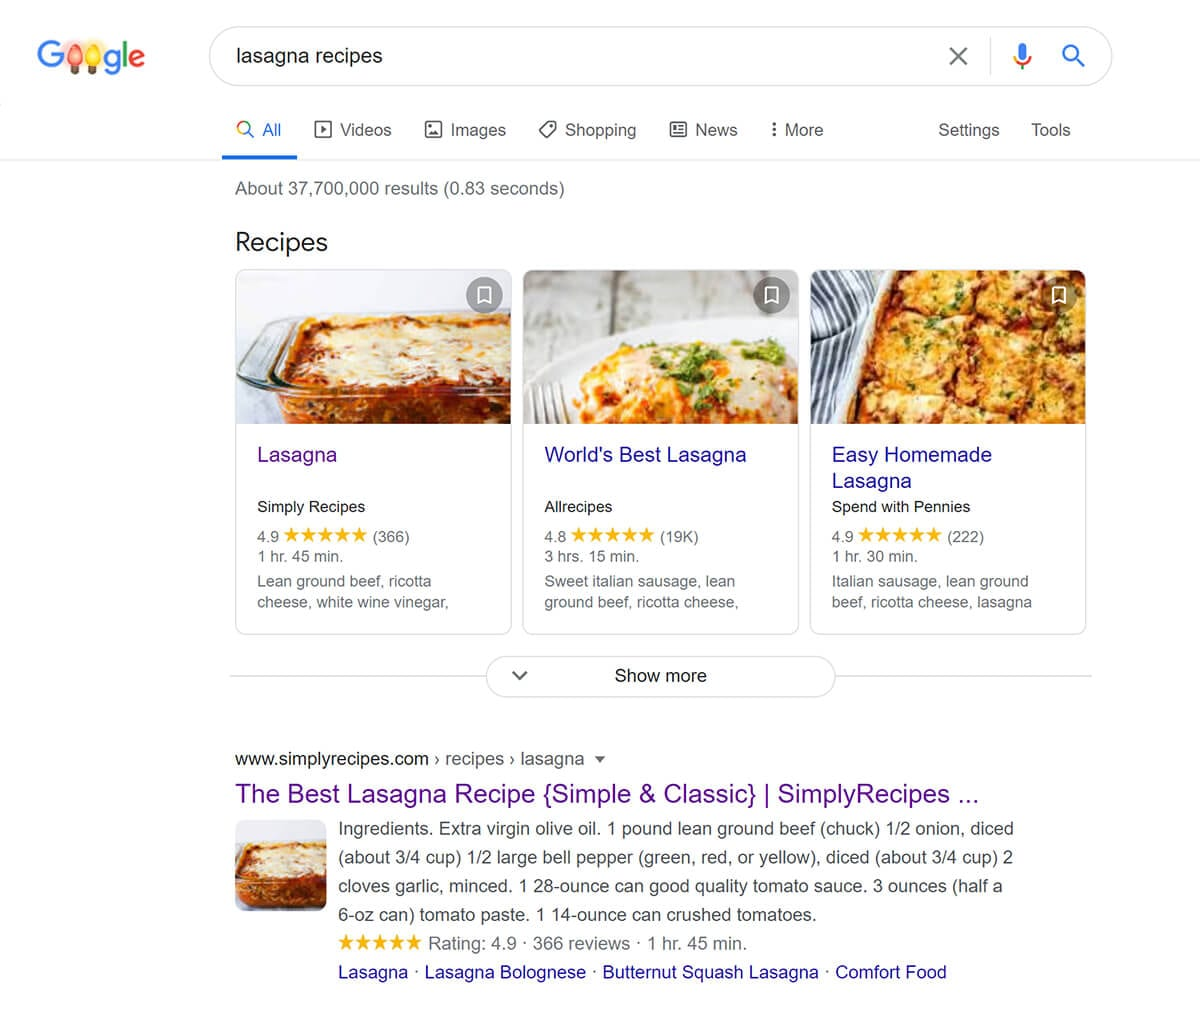 Example of how Google uses structured data in search results